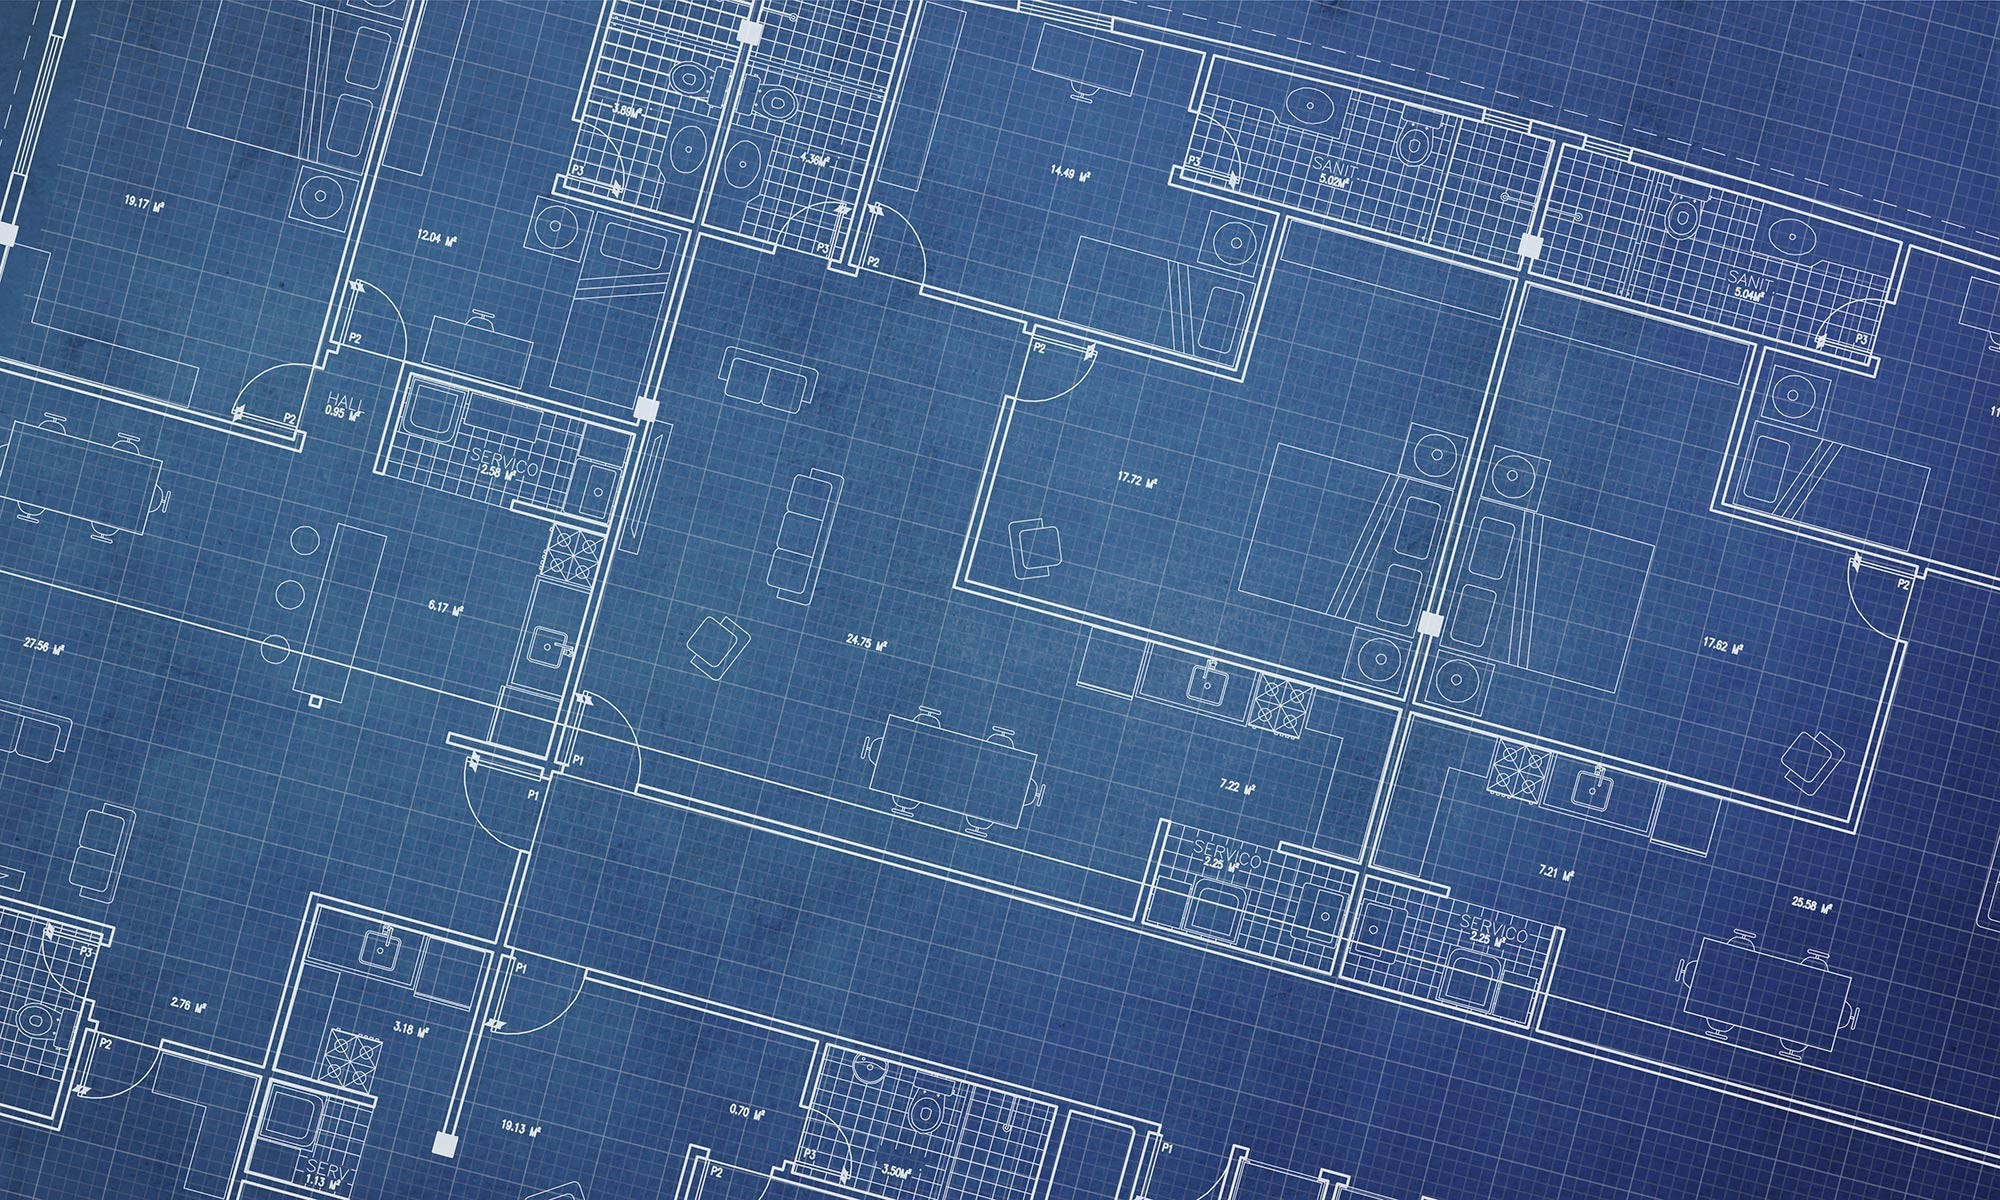 Blue print background 46 images 3840x2160 technology google design logo blueprint wallpaper malvernweather Choice Image